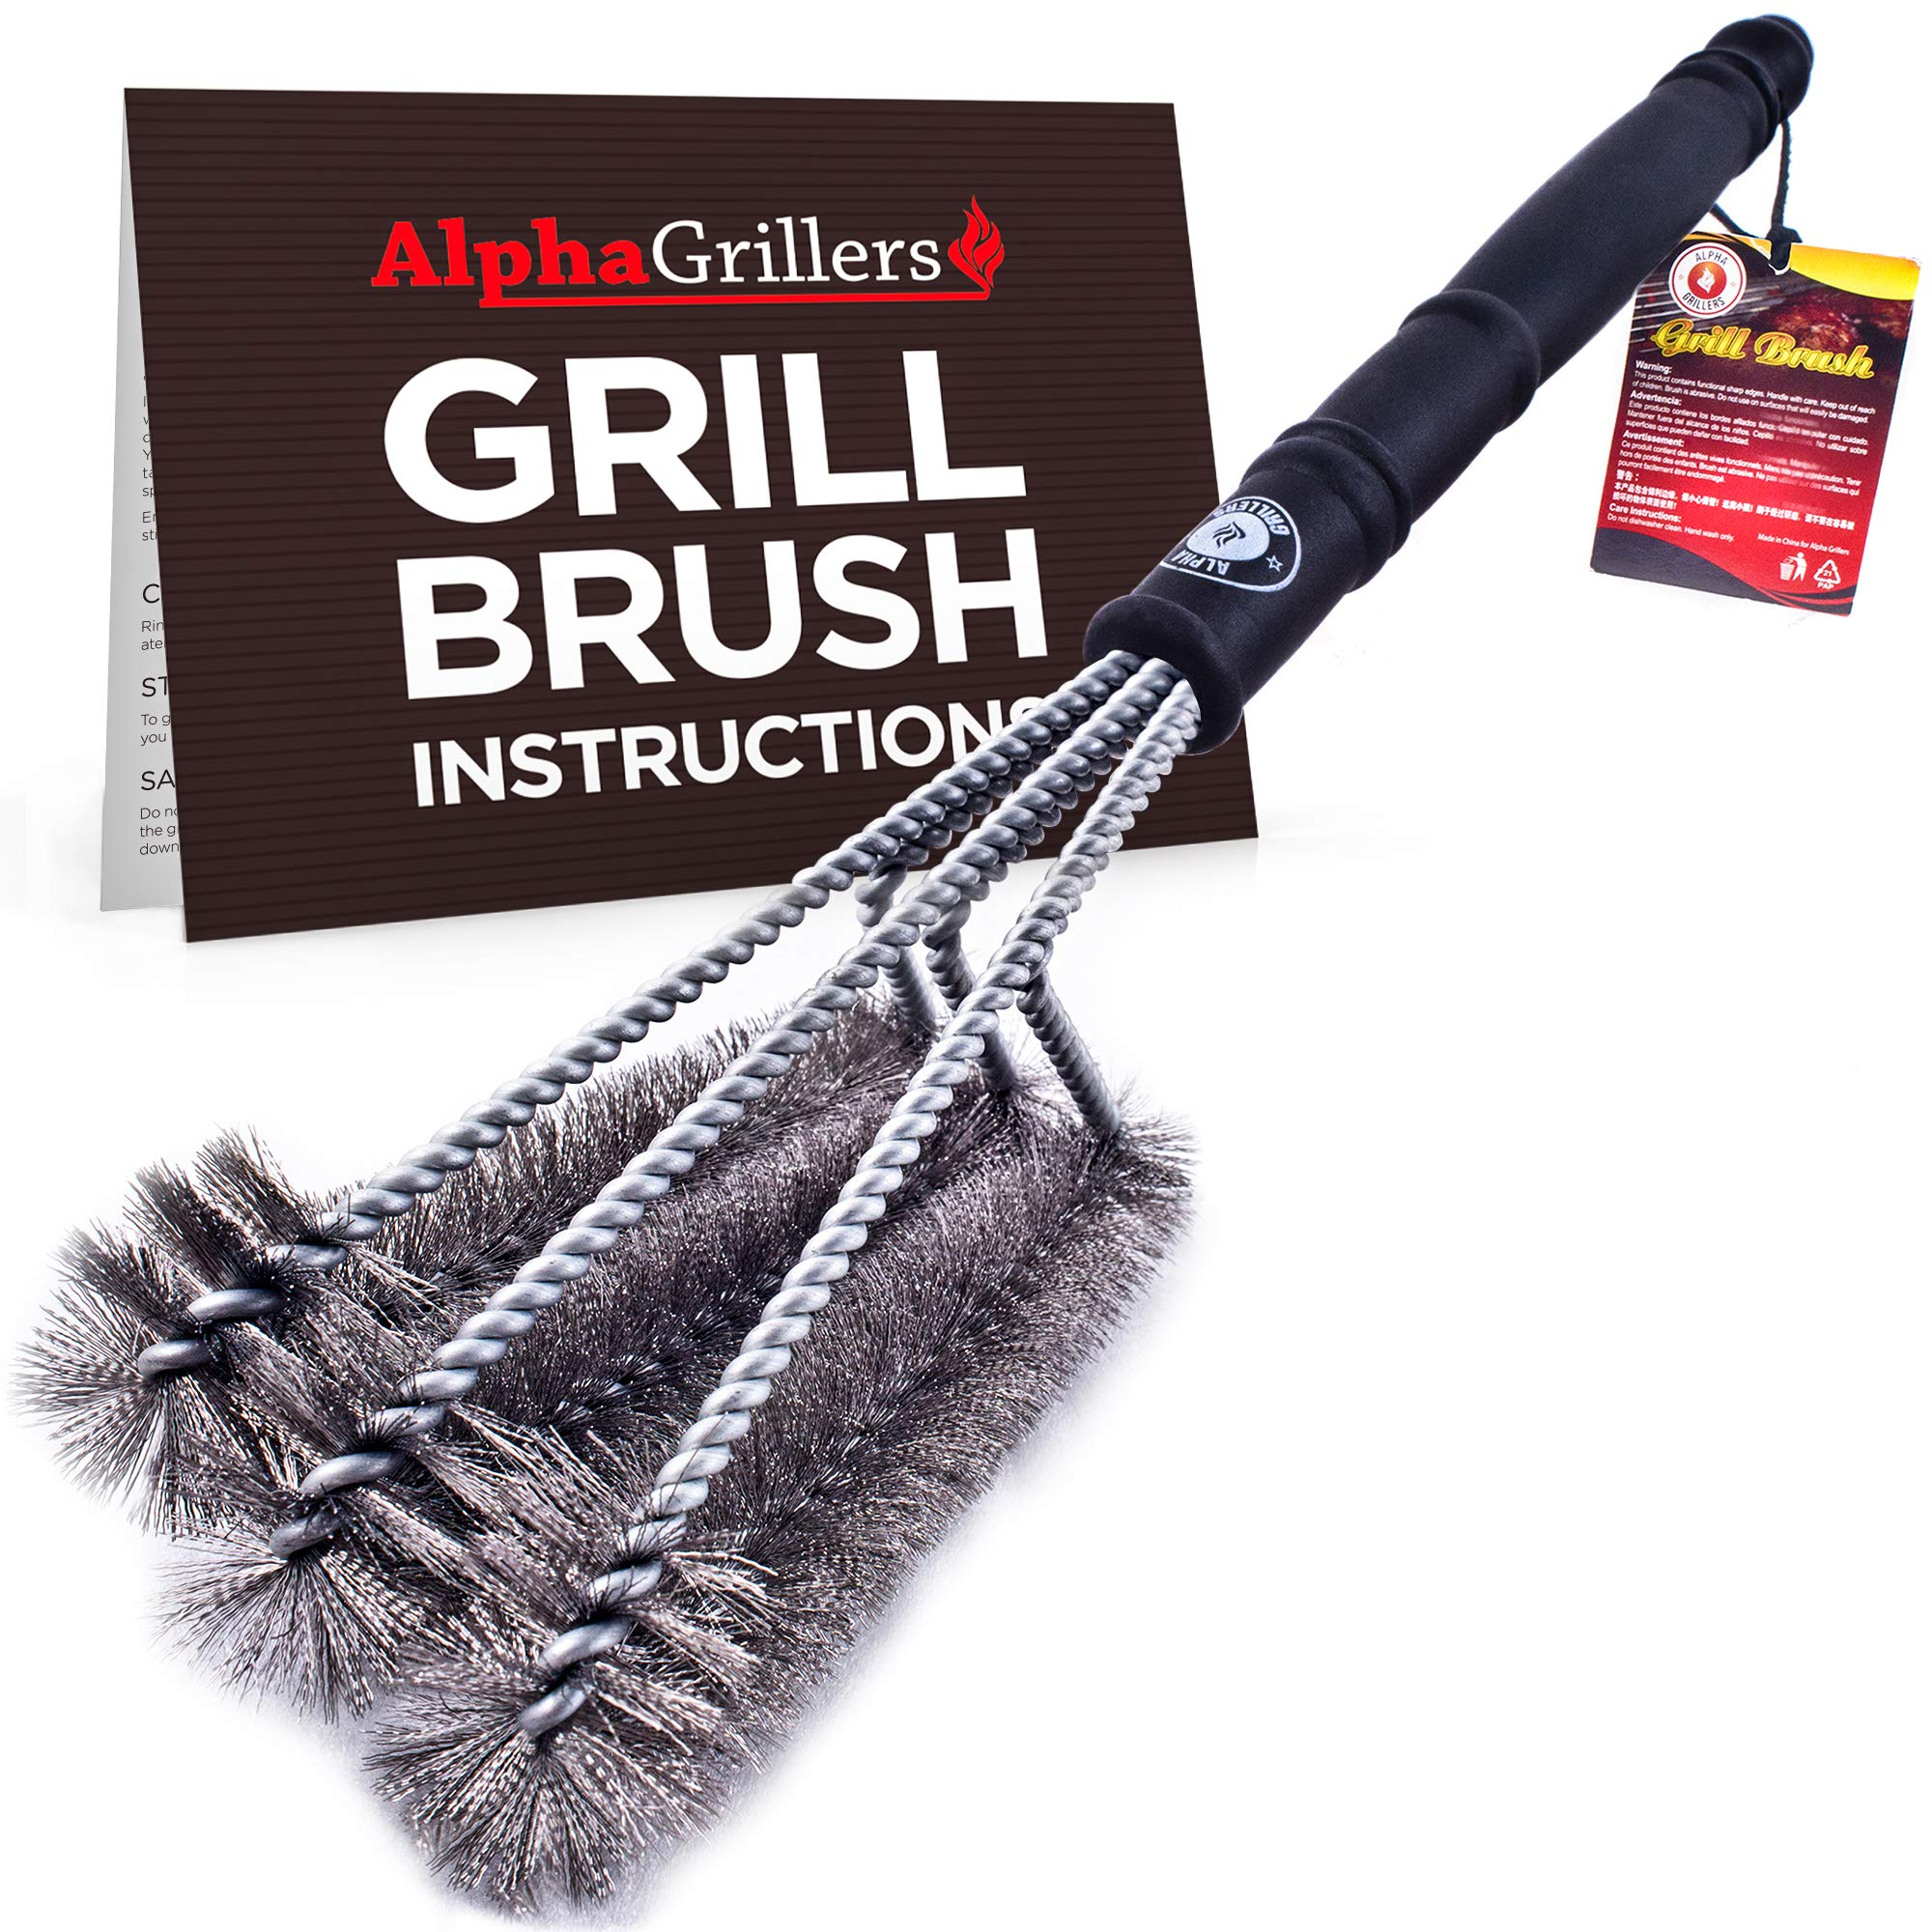 Alpha Grillers Grill Brush. Best 18'' BBQ Cleaner. Safe For All Grills. Durable & Effective. Stainless Steel Wire Bristles And Stiff Handle. A Perfect Gift For Barbecue Lovers.